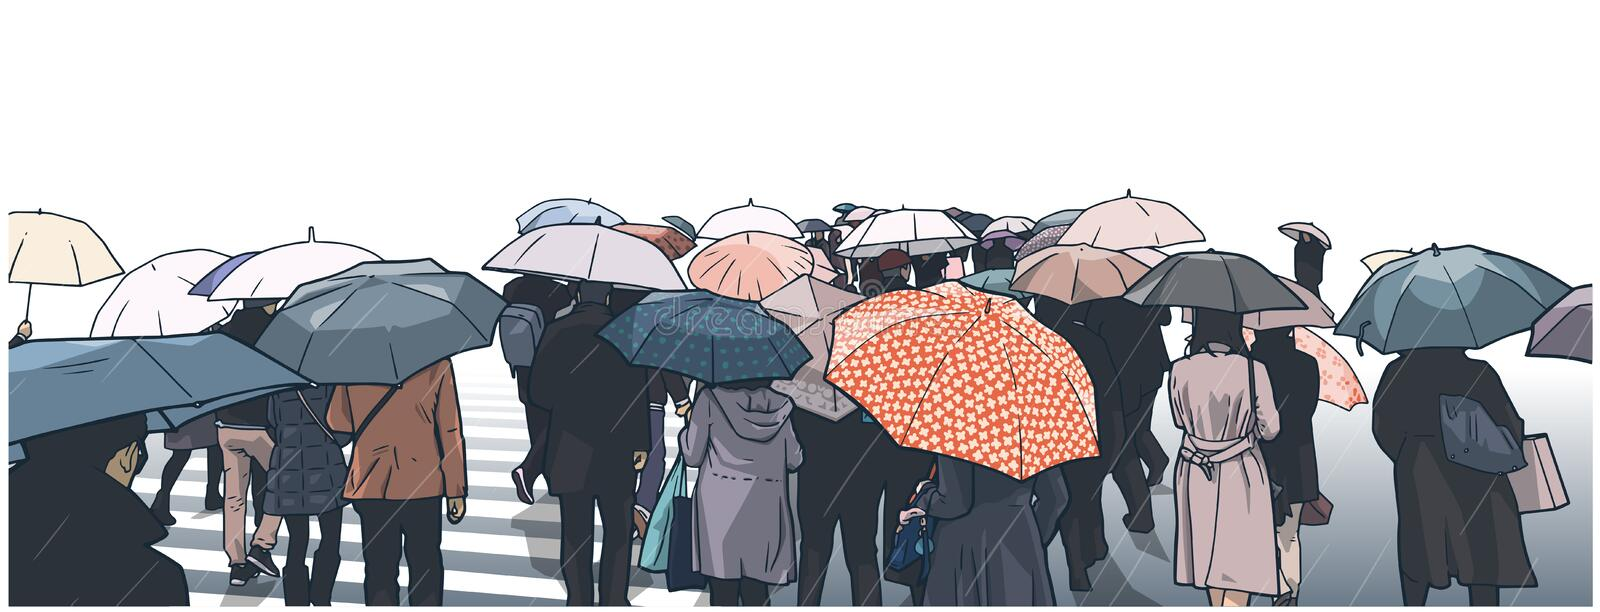 Illustration of crowd of people waiting at street crossing in the rain with rain coats and umbrellas. Stylized drawing of Tokyo crowd in rain royalty free illustration